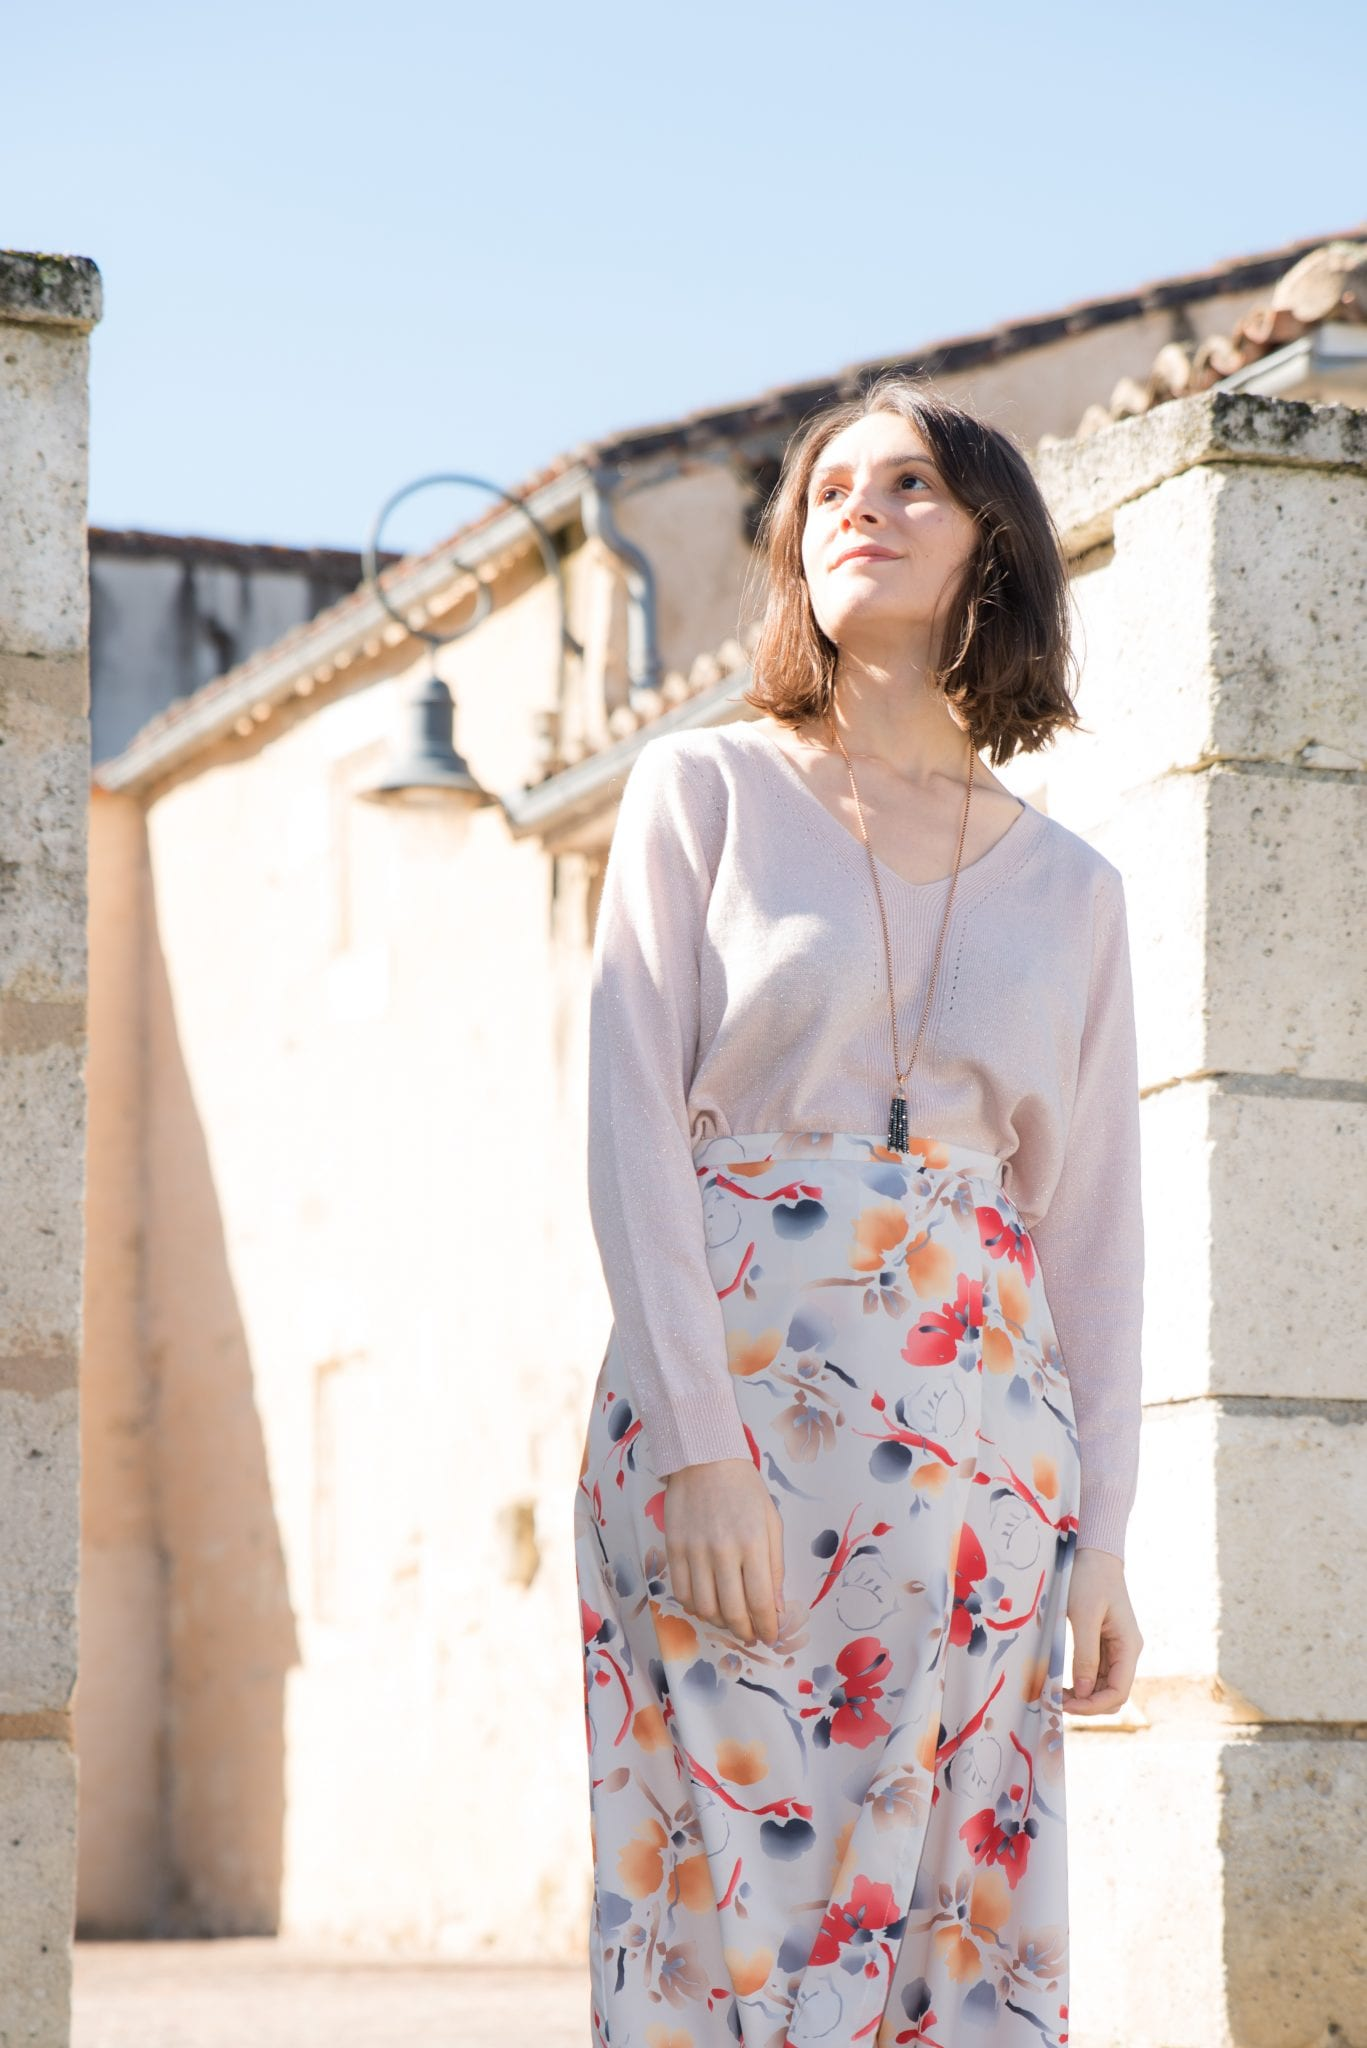 Porter-jupe-portefeuille-midi-imprimee-fleurs-printemps-été-2018 // Blog-mode-ethique-some-place-called-home-estelle